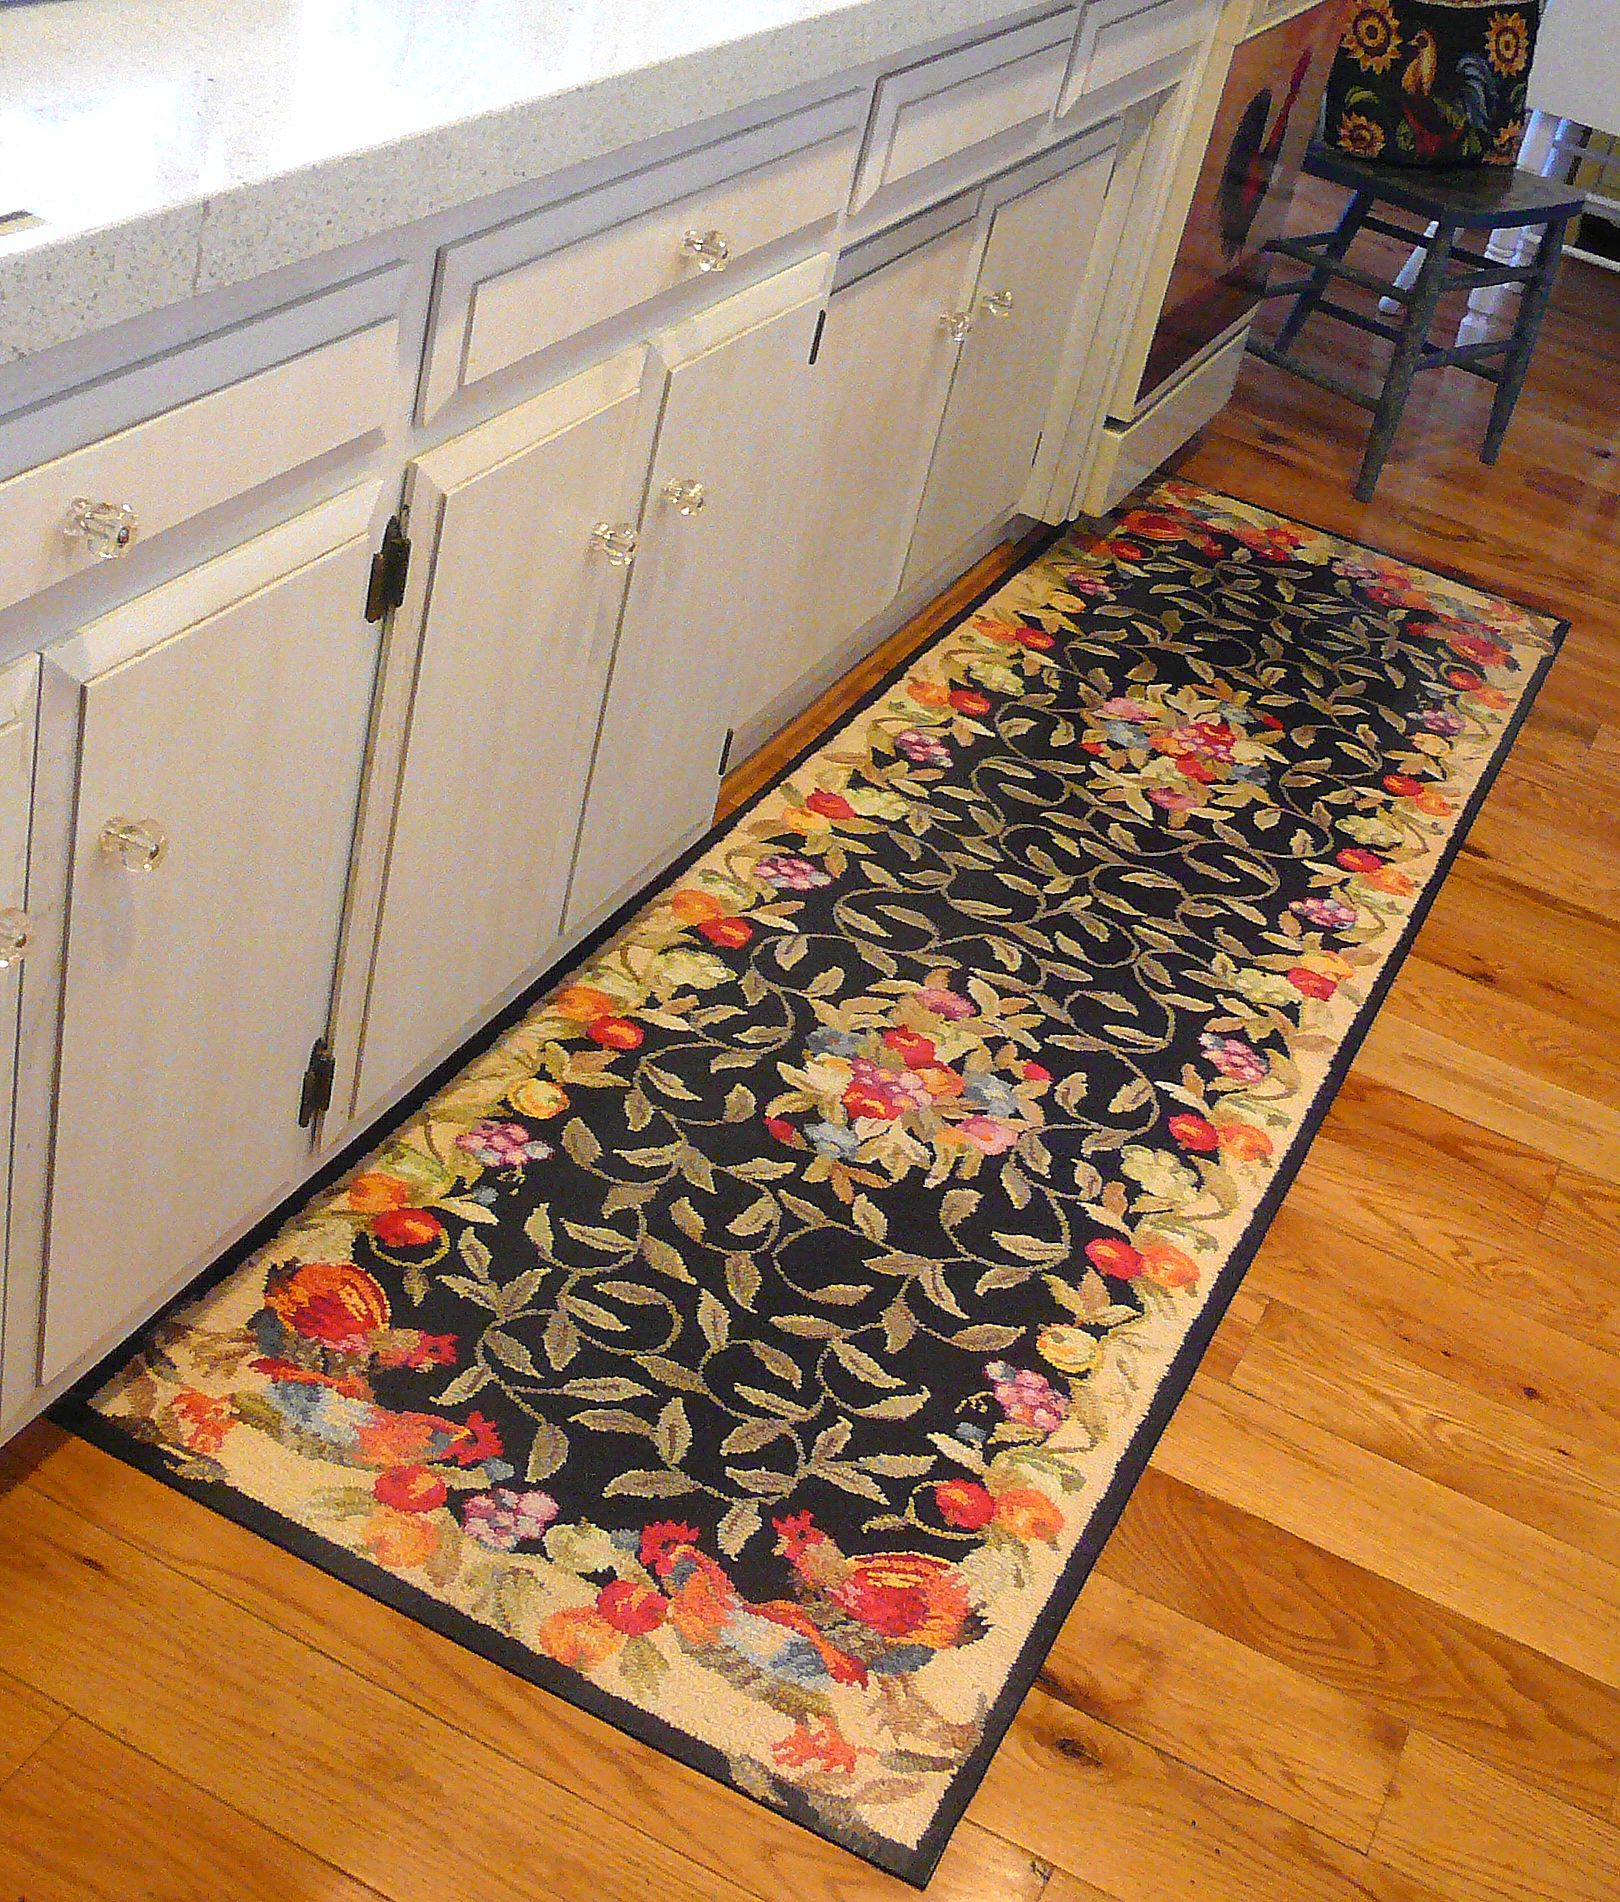 kitchen floor mat Custom Made Floor Mats this is not a rug it s a painted floor mat